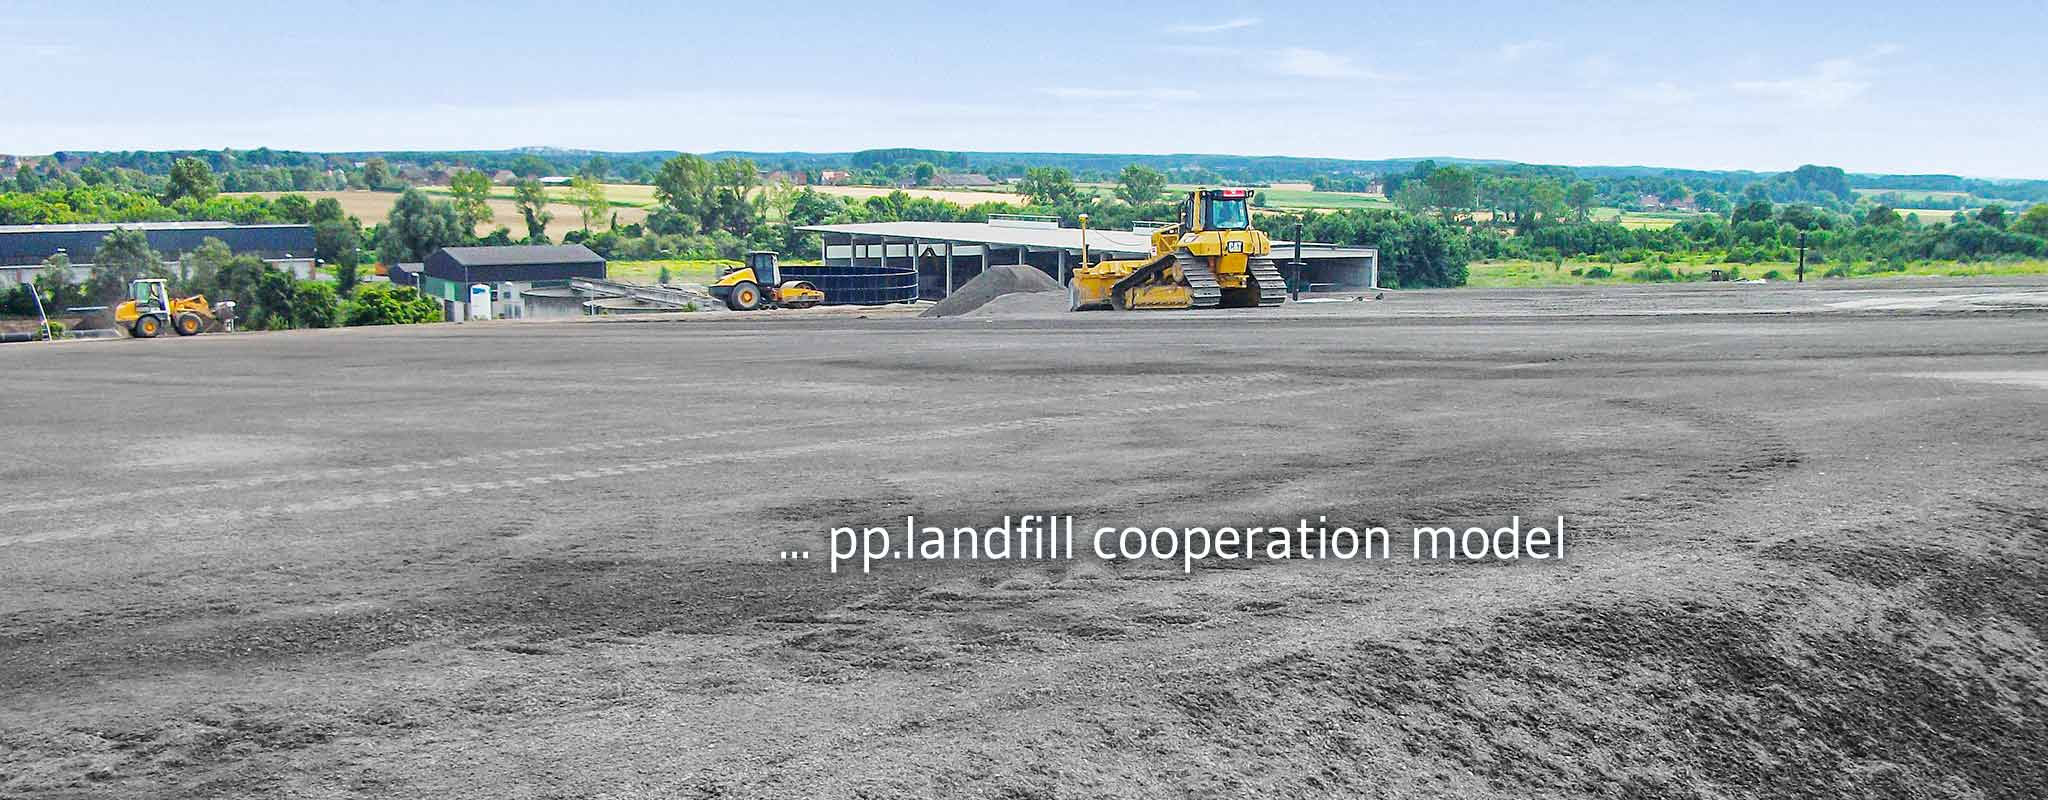 public private partnership model for landfill sites